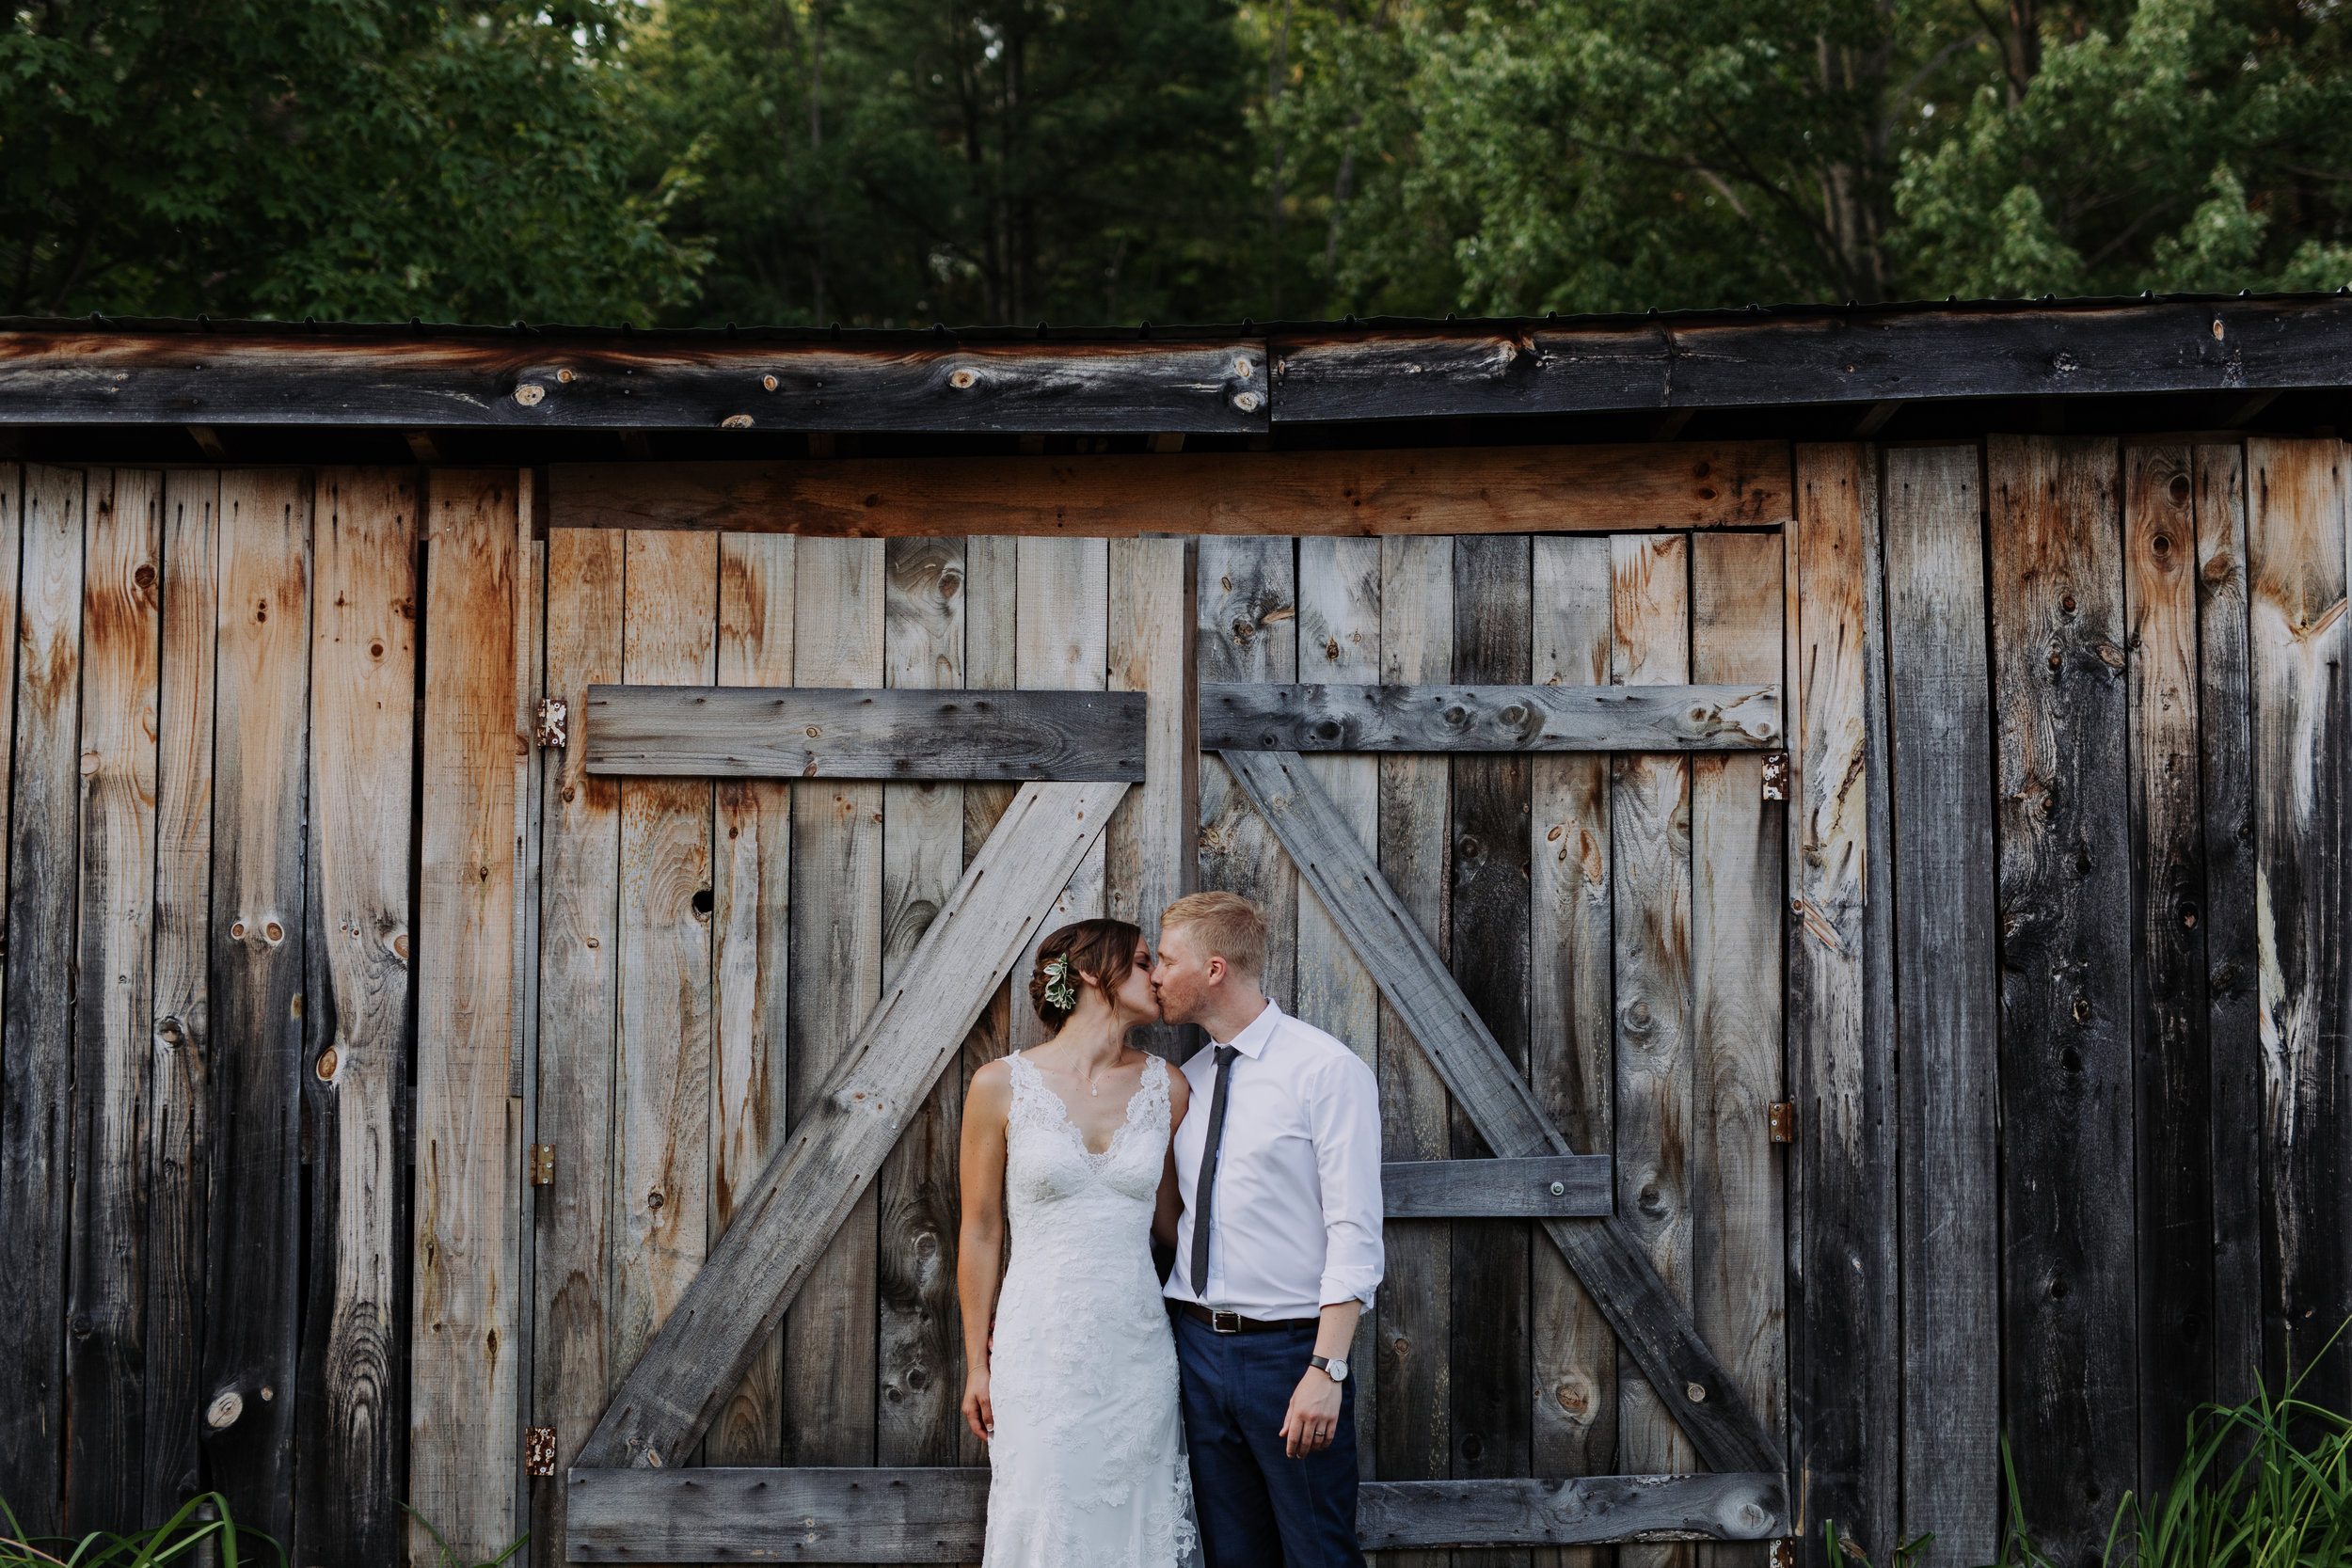 TRicia + Luke - Photos by Anita Peeples Photography